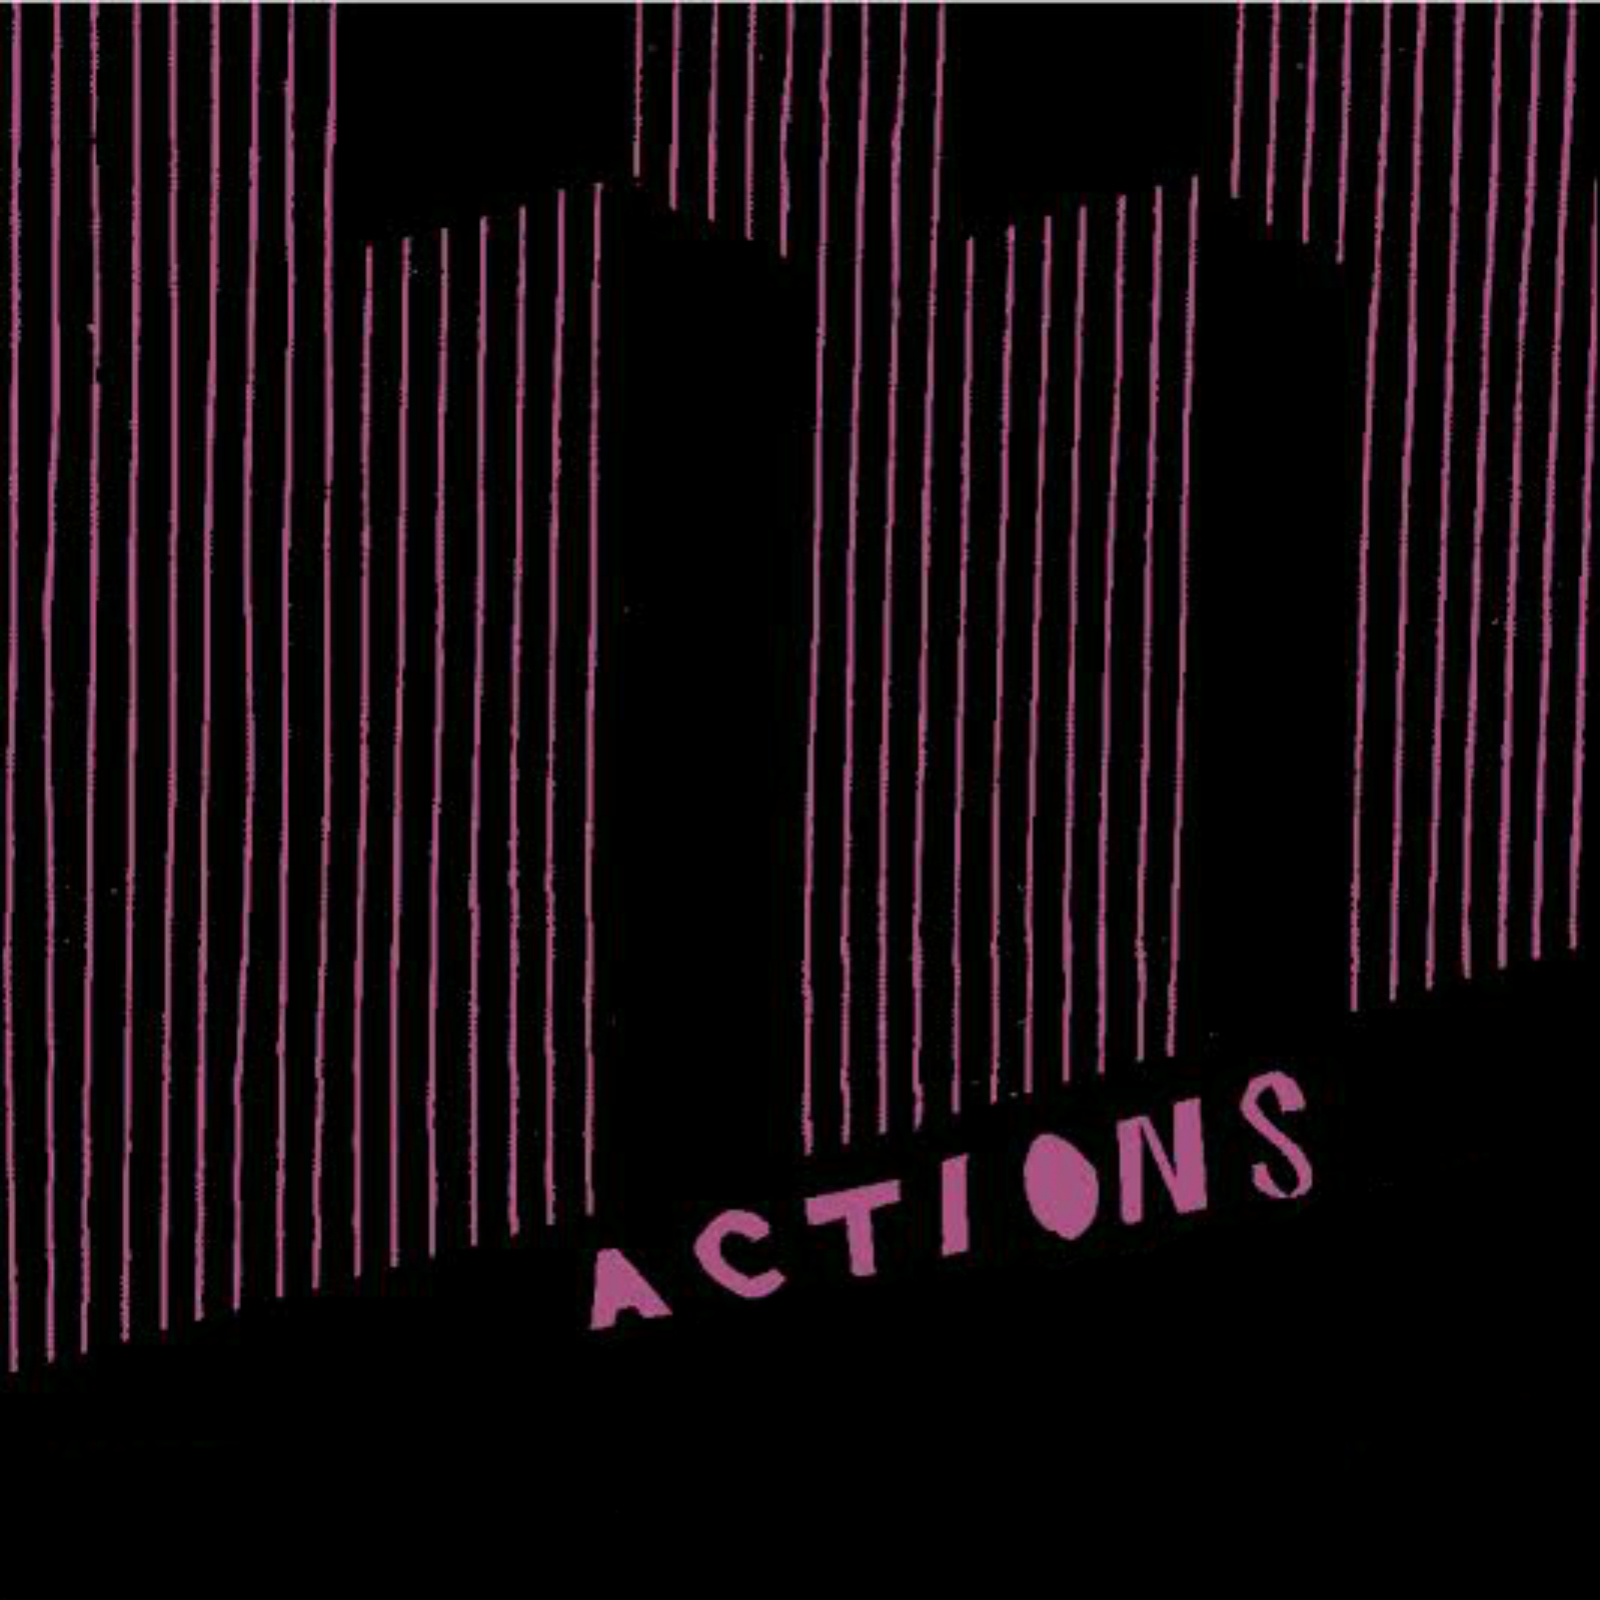 """Turn to crime share their single and title-track """"Actions,"""" the LP comes out 4/28 on Mugg & Bopp."""